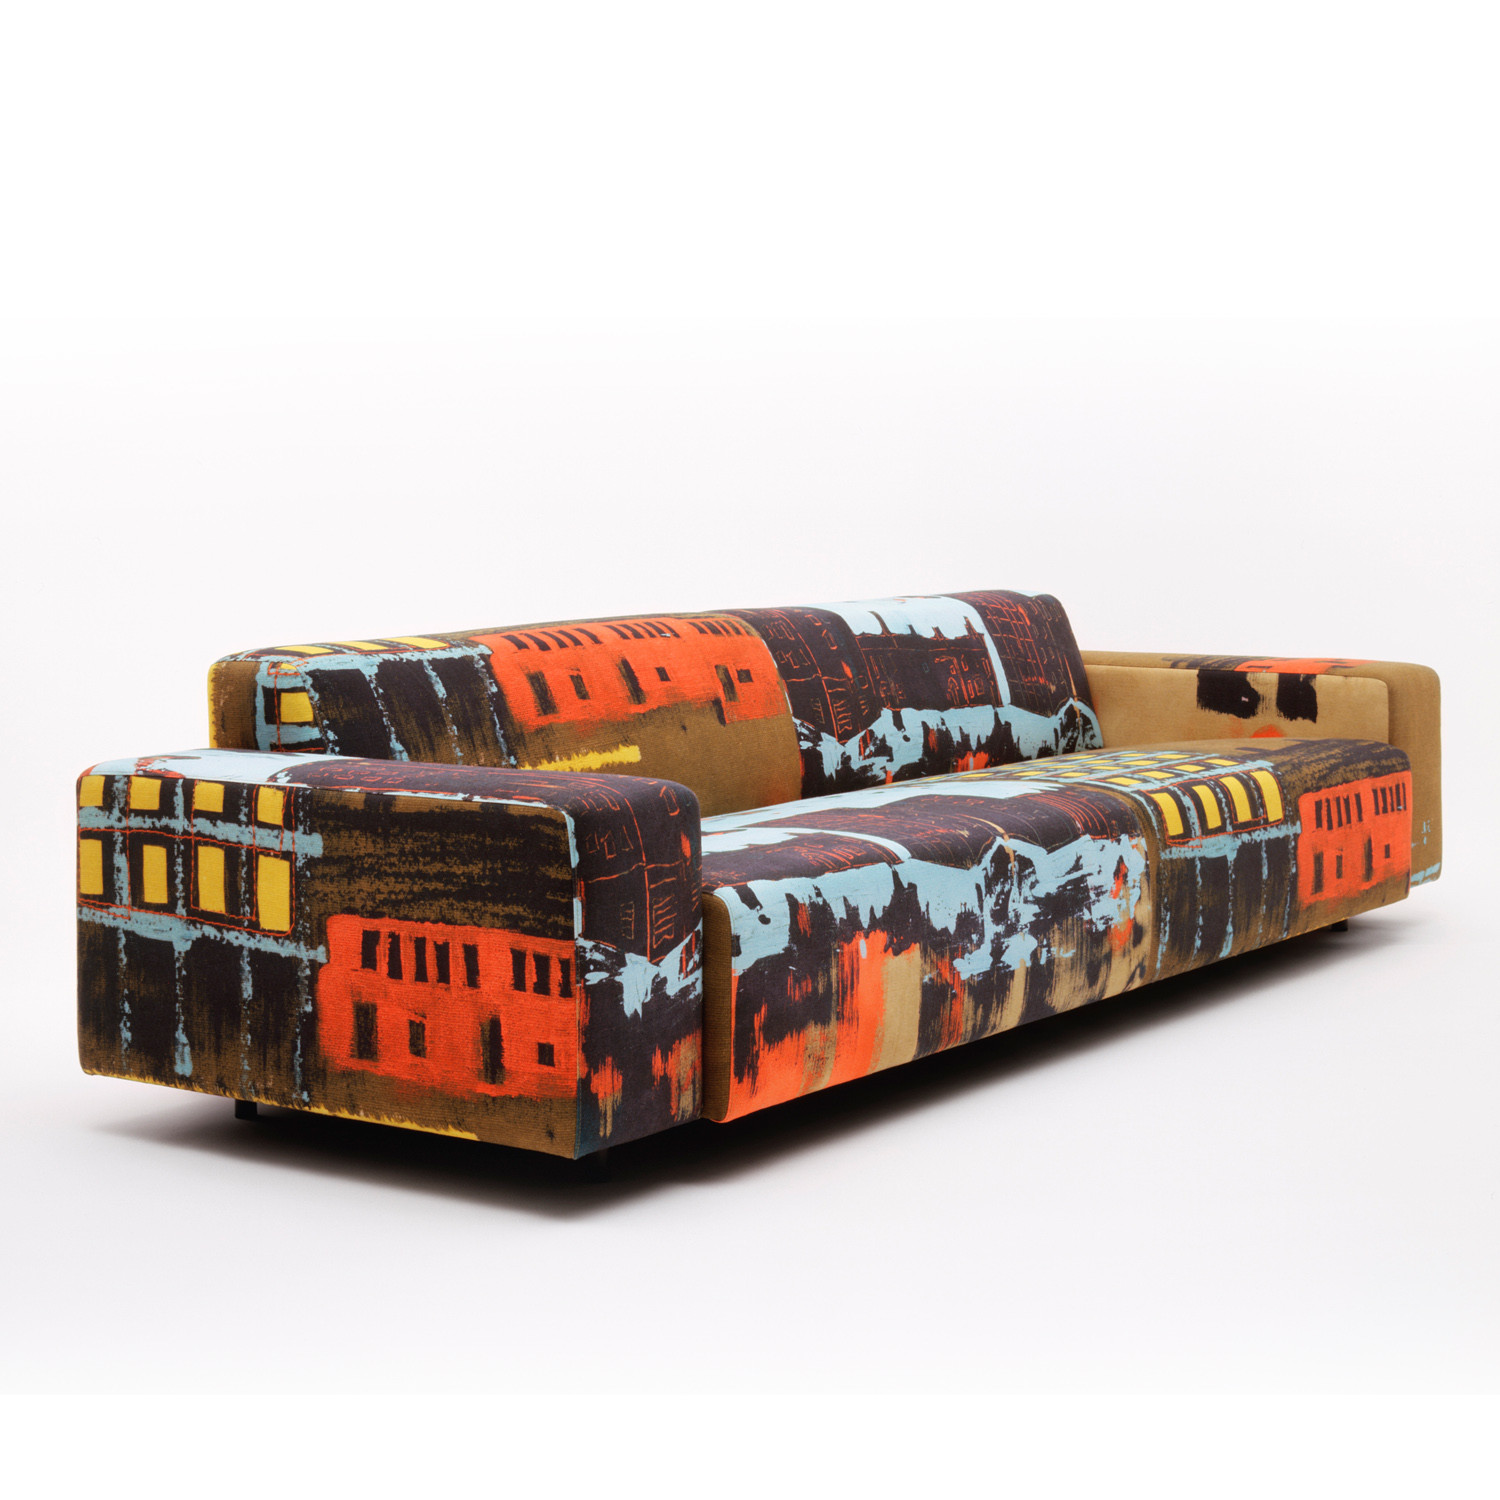 HM17 Sofa is available in a wide range of fabrics and leathers